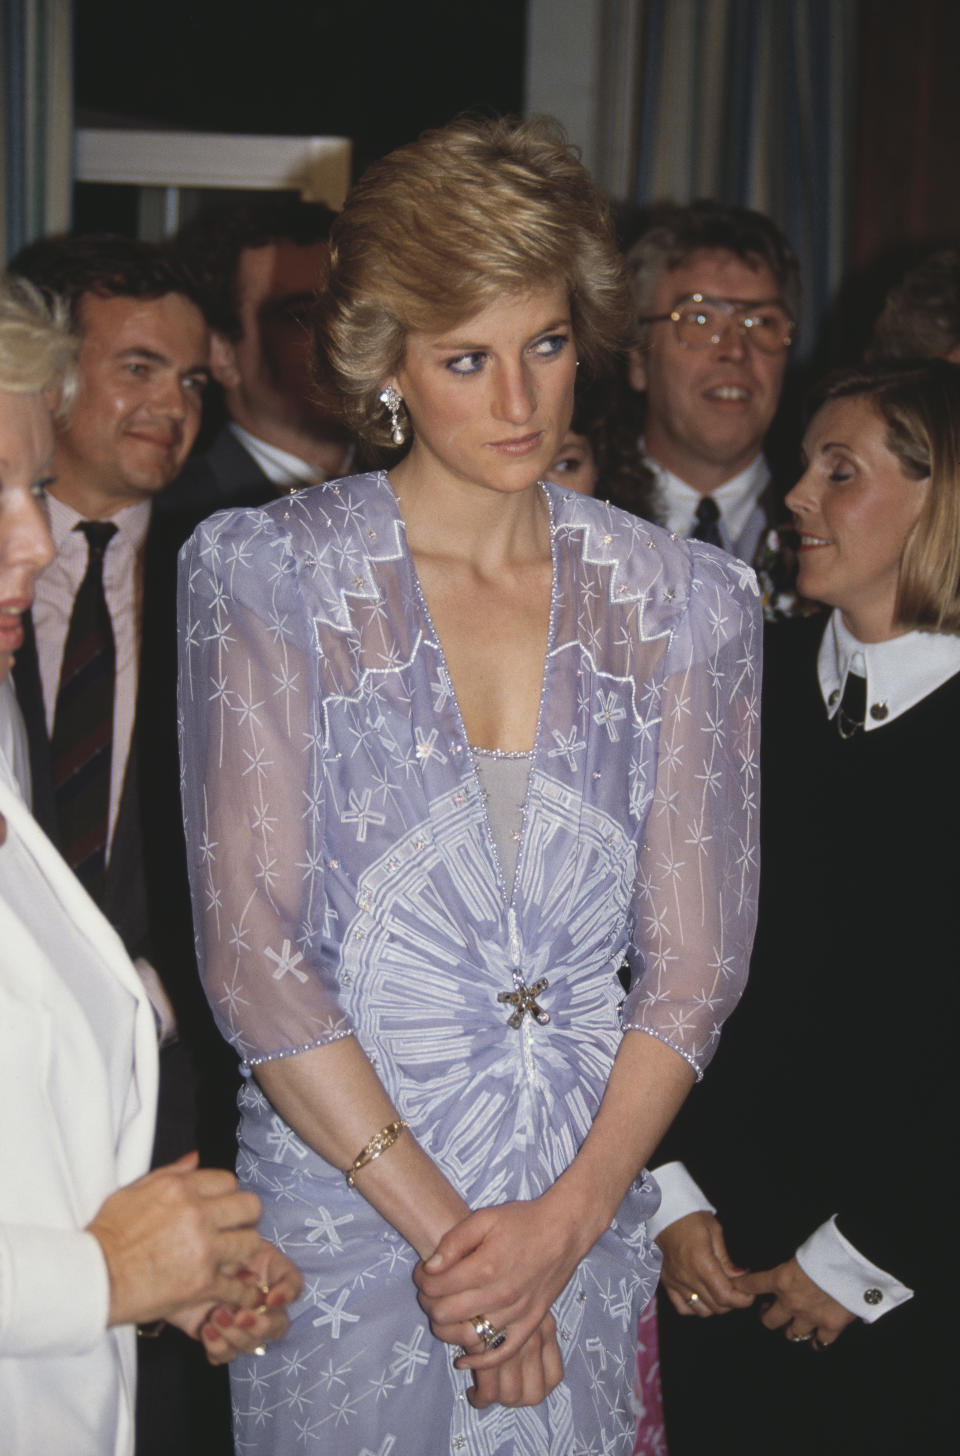 Diana, Princess of Wales  (1961 - 1997) attends a reception at the British Consulate in Dubai, in the United Arab Emirates, March 1989. She is wearing a cocktail dress by Zandra Rhodes.  (Photo by Jayne Fincher/Princess Diana Archive/Getty Images)